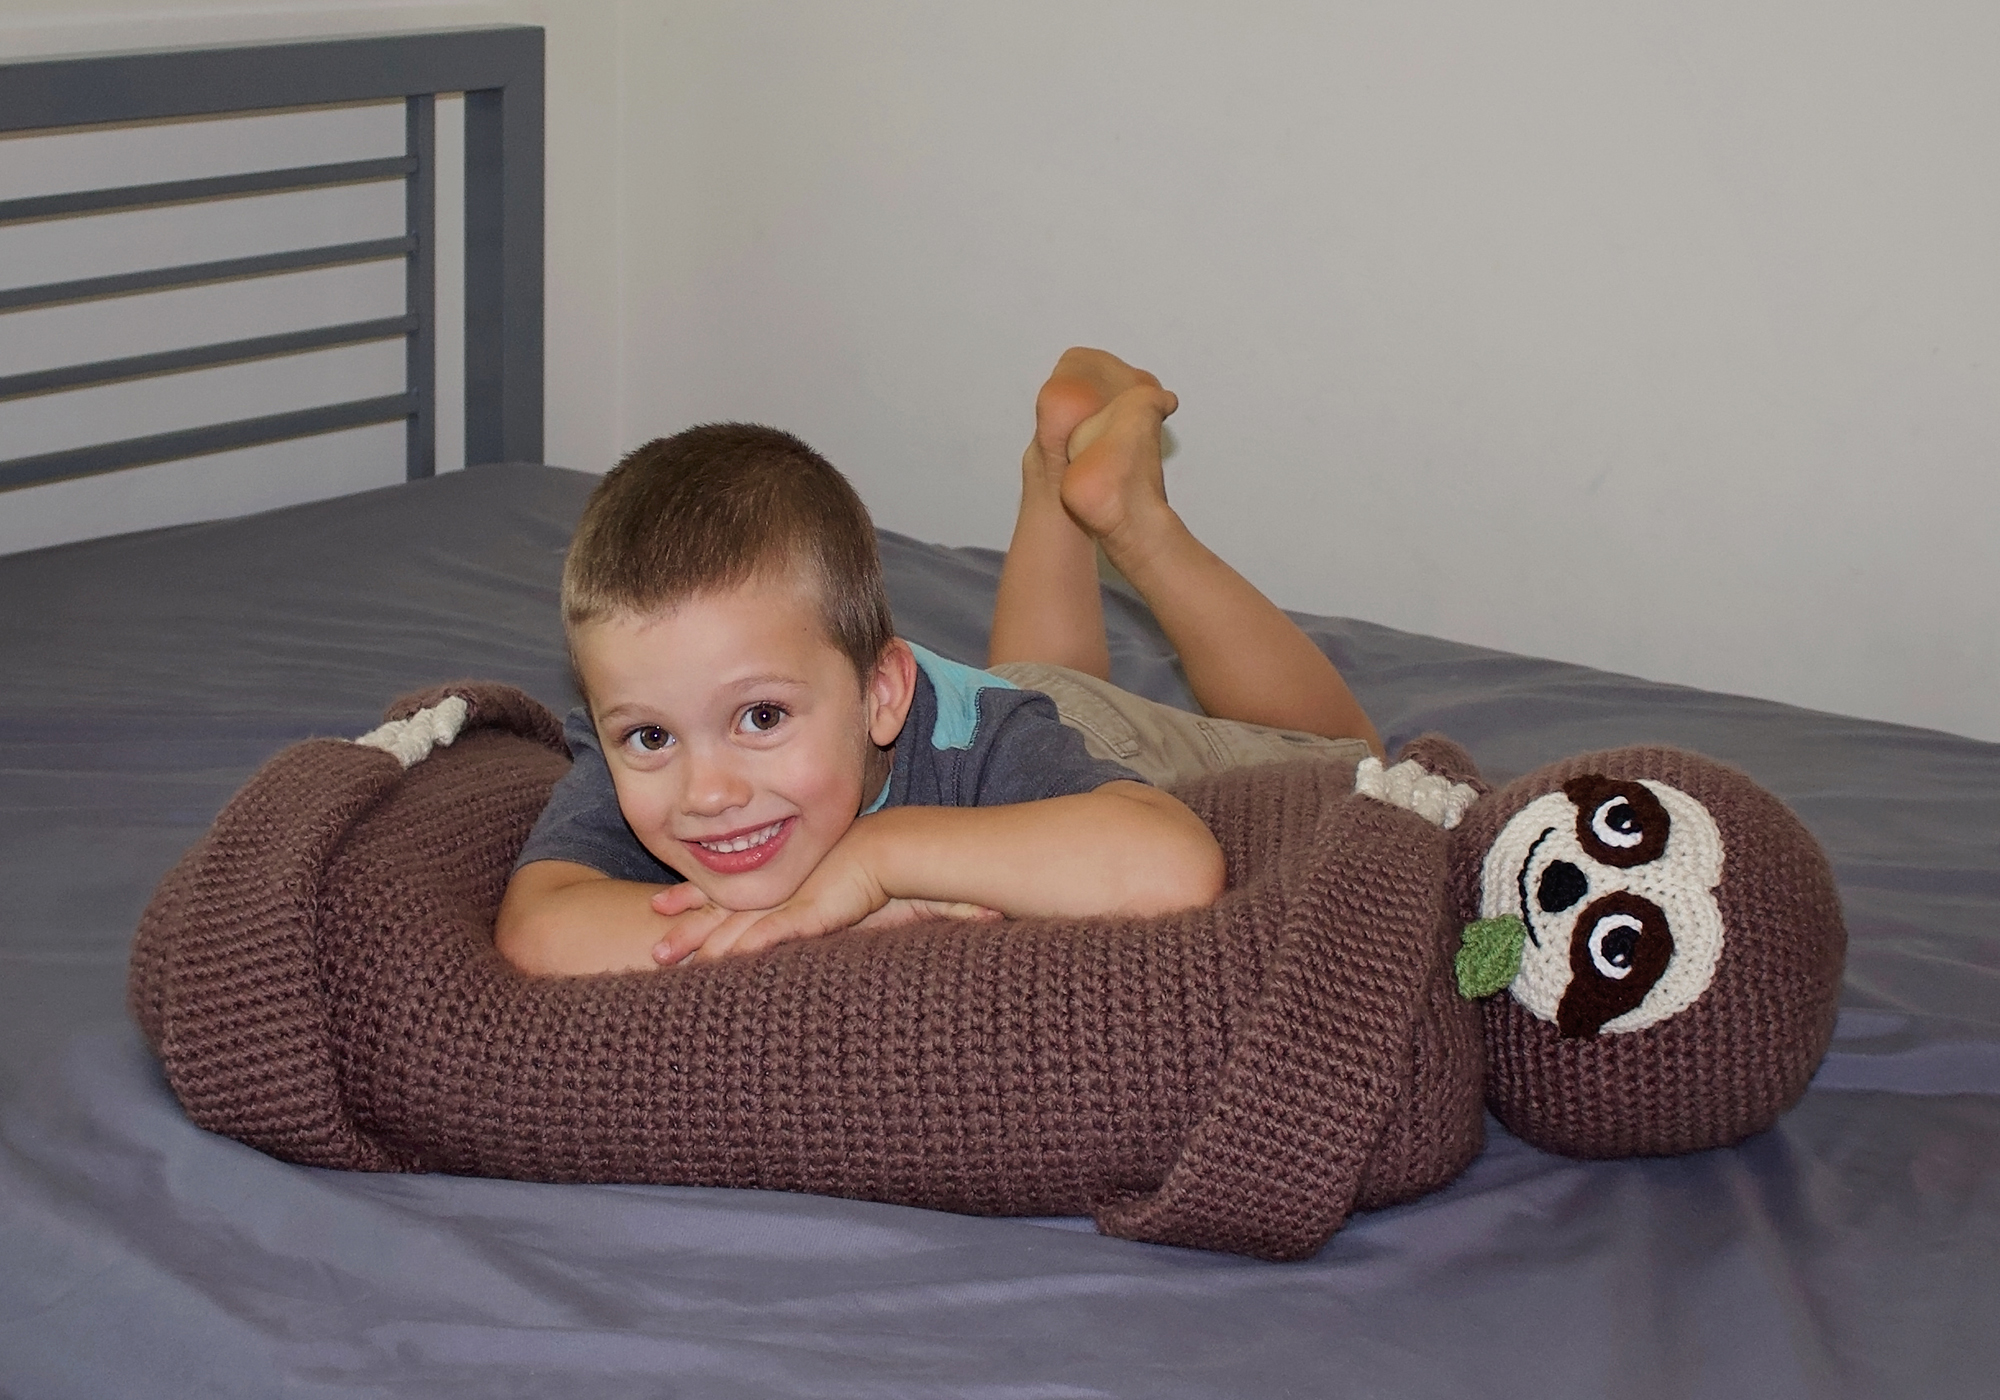 crochet sloth pillow